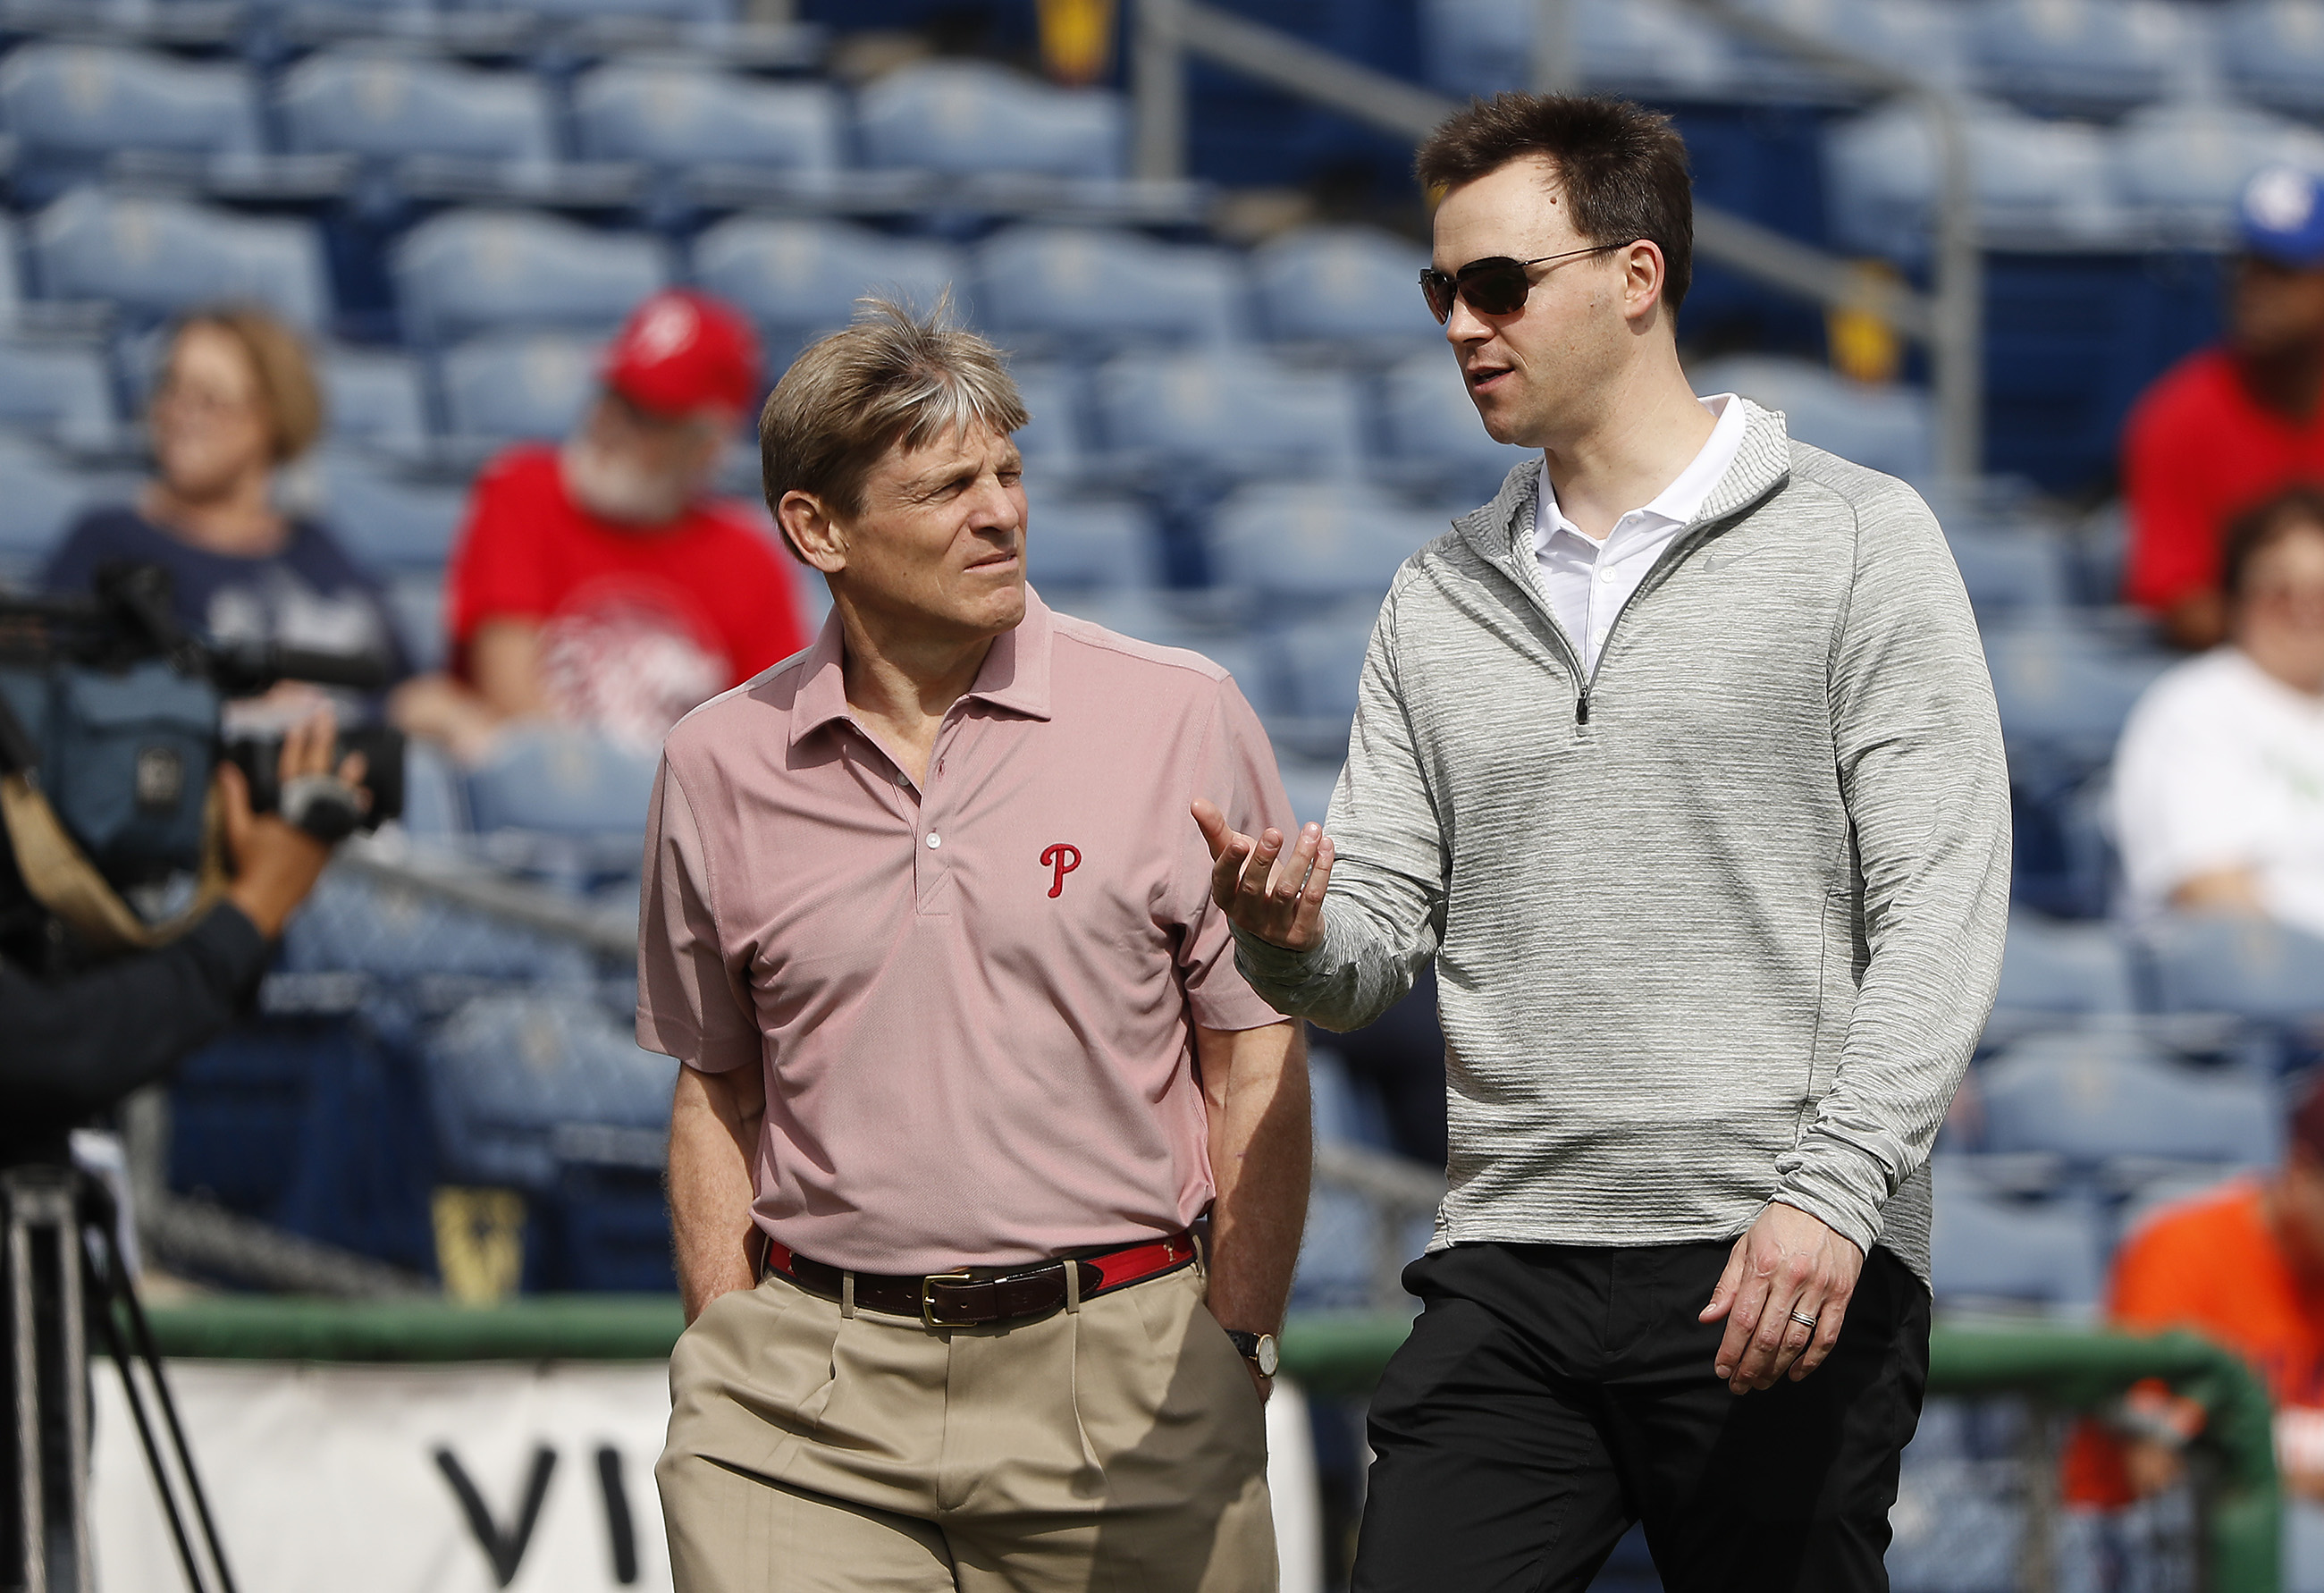 Phillies owner John Middleton and general manager Matt Klentak are appearing set to spend big this winter, but teams like the Dodgers and Yankees will have the funds to compete with them.